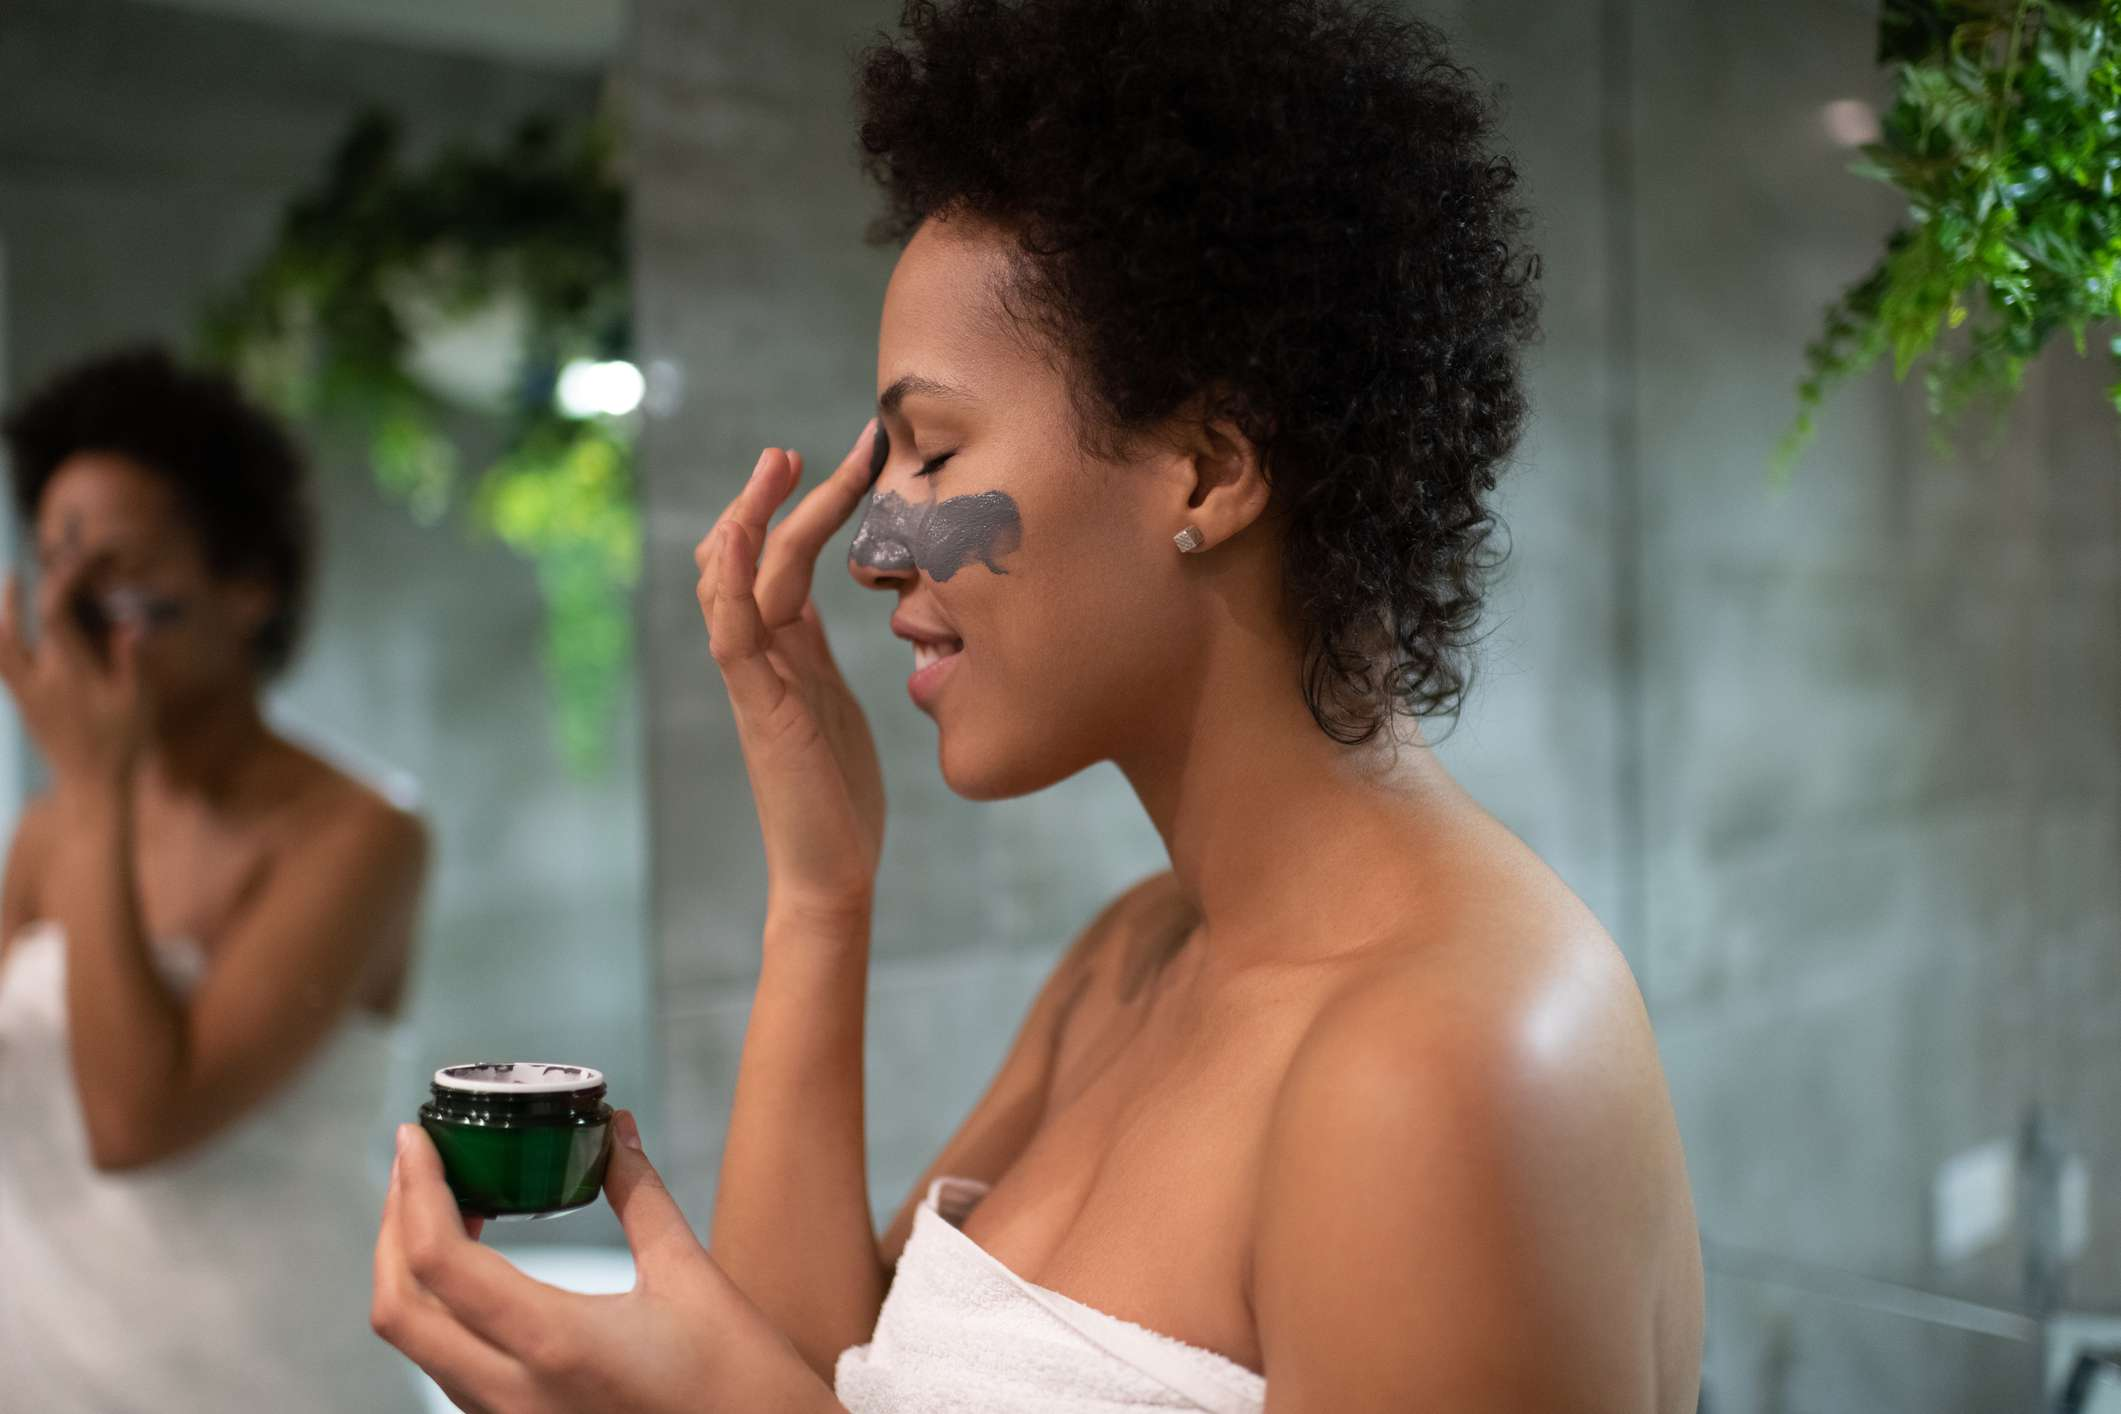 A Black woman applies clay under her eyes.